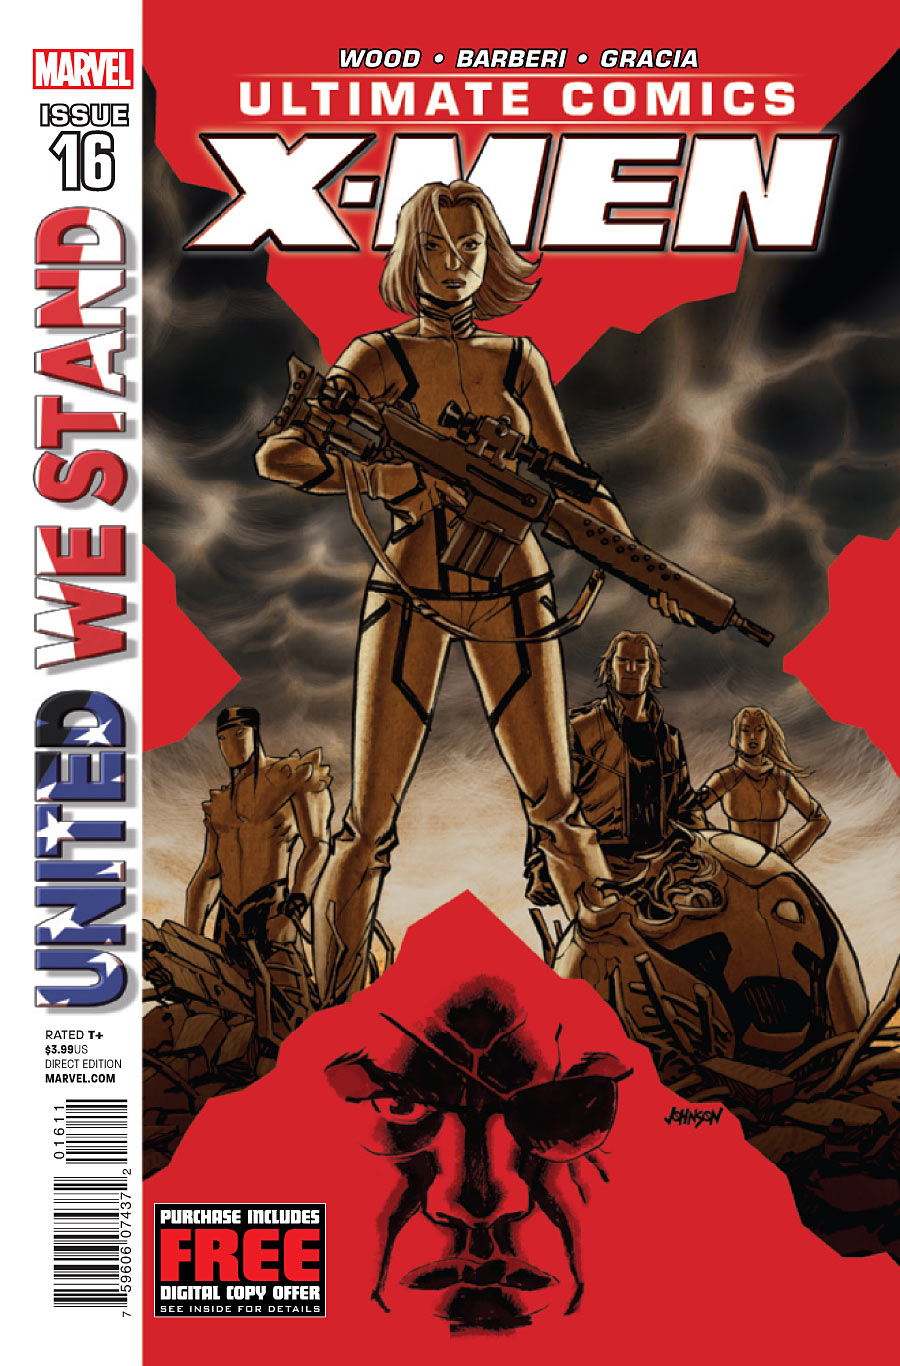 Ultimate Comics X-Men issue 16